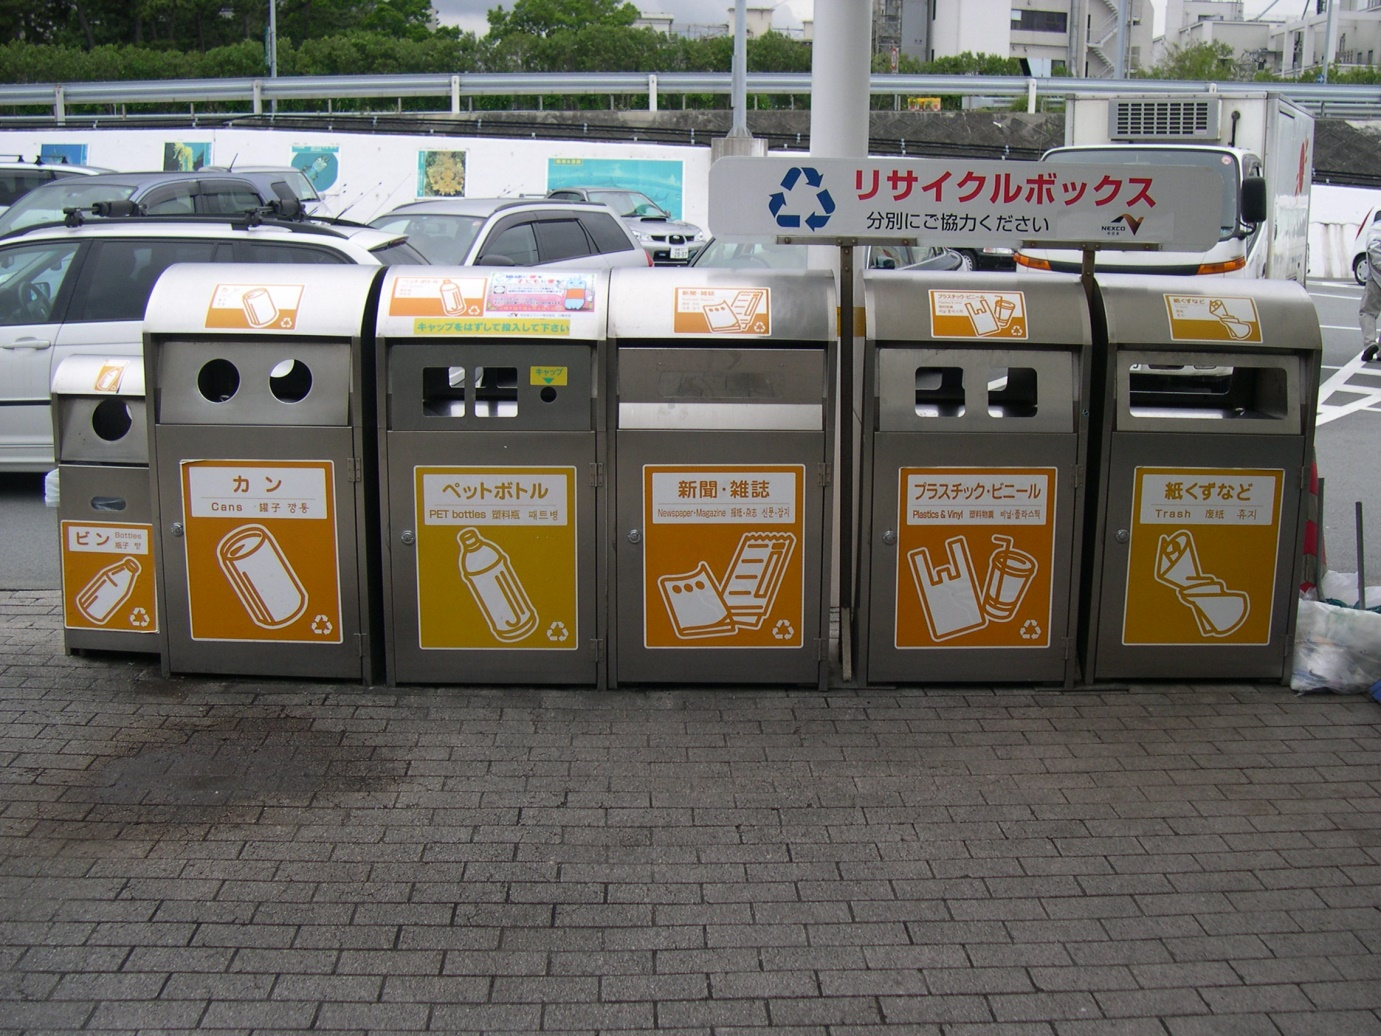 Garbage Disposal in Japan – Burnable & Non-Burnable Items